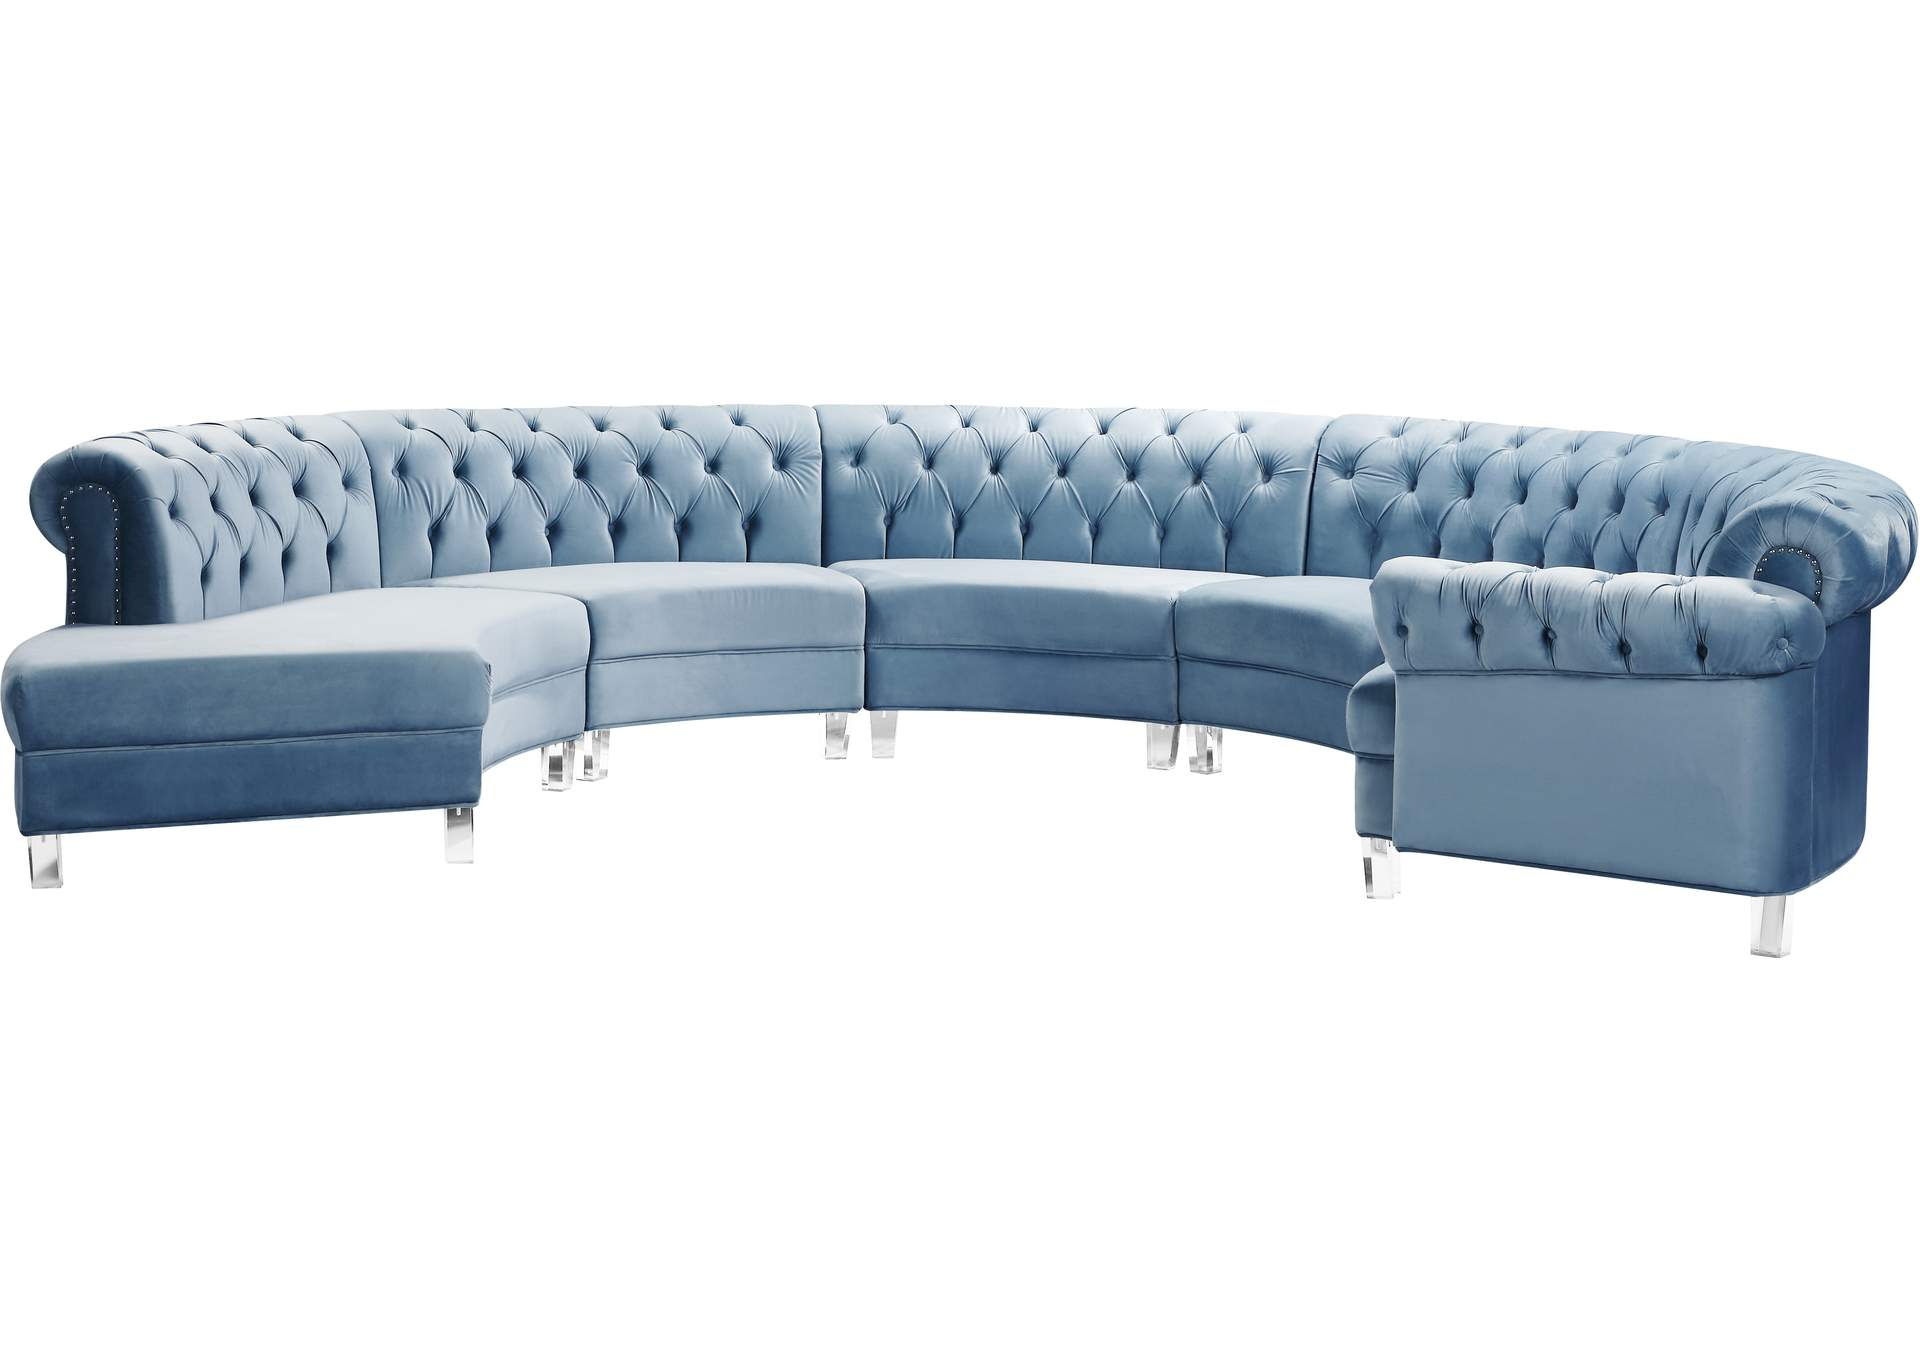 Anabella Sky Blue Velvet 5pc Sectional Best Buy Furniture And Mattress